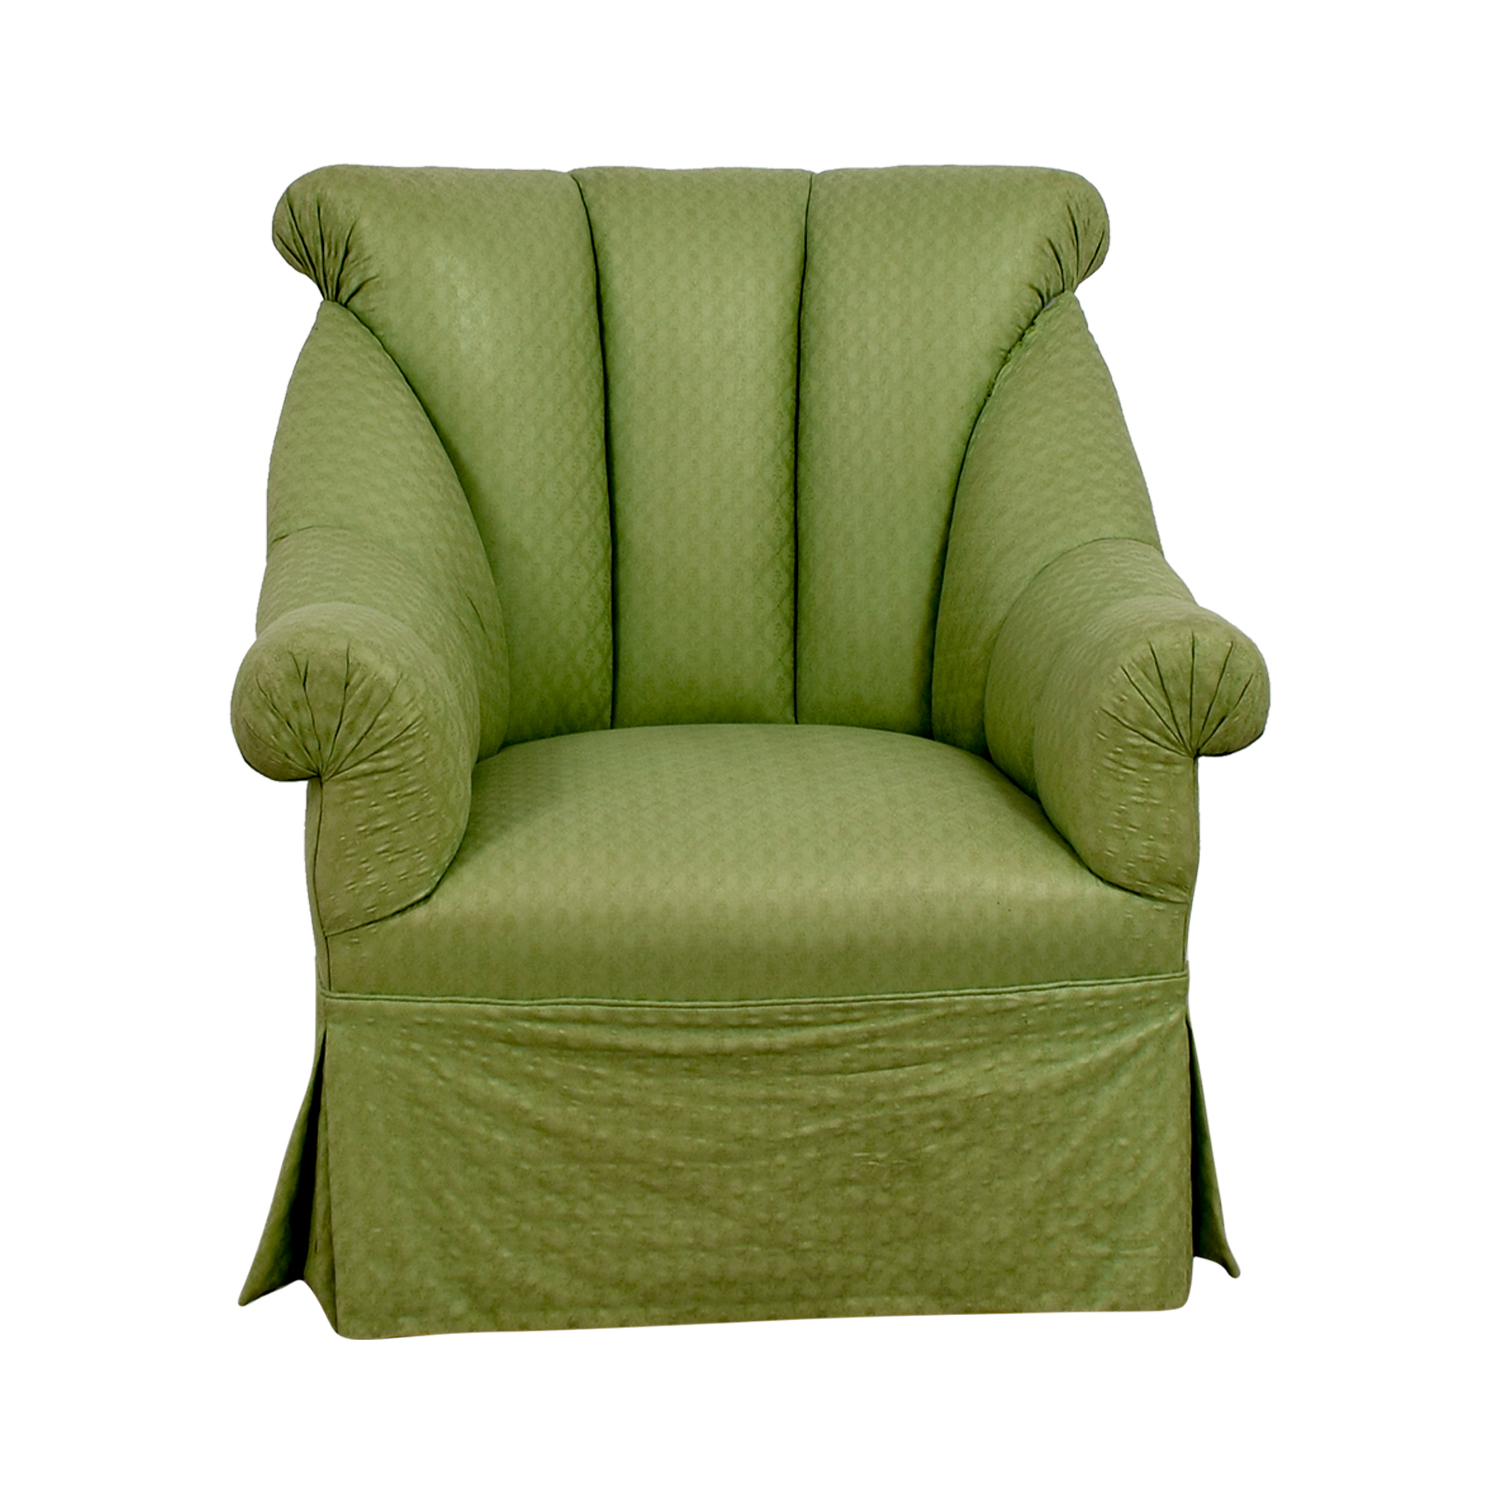 Furniture Masters Furniture Masters Green Skirted Armchair dimensions